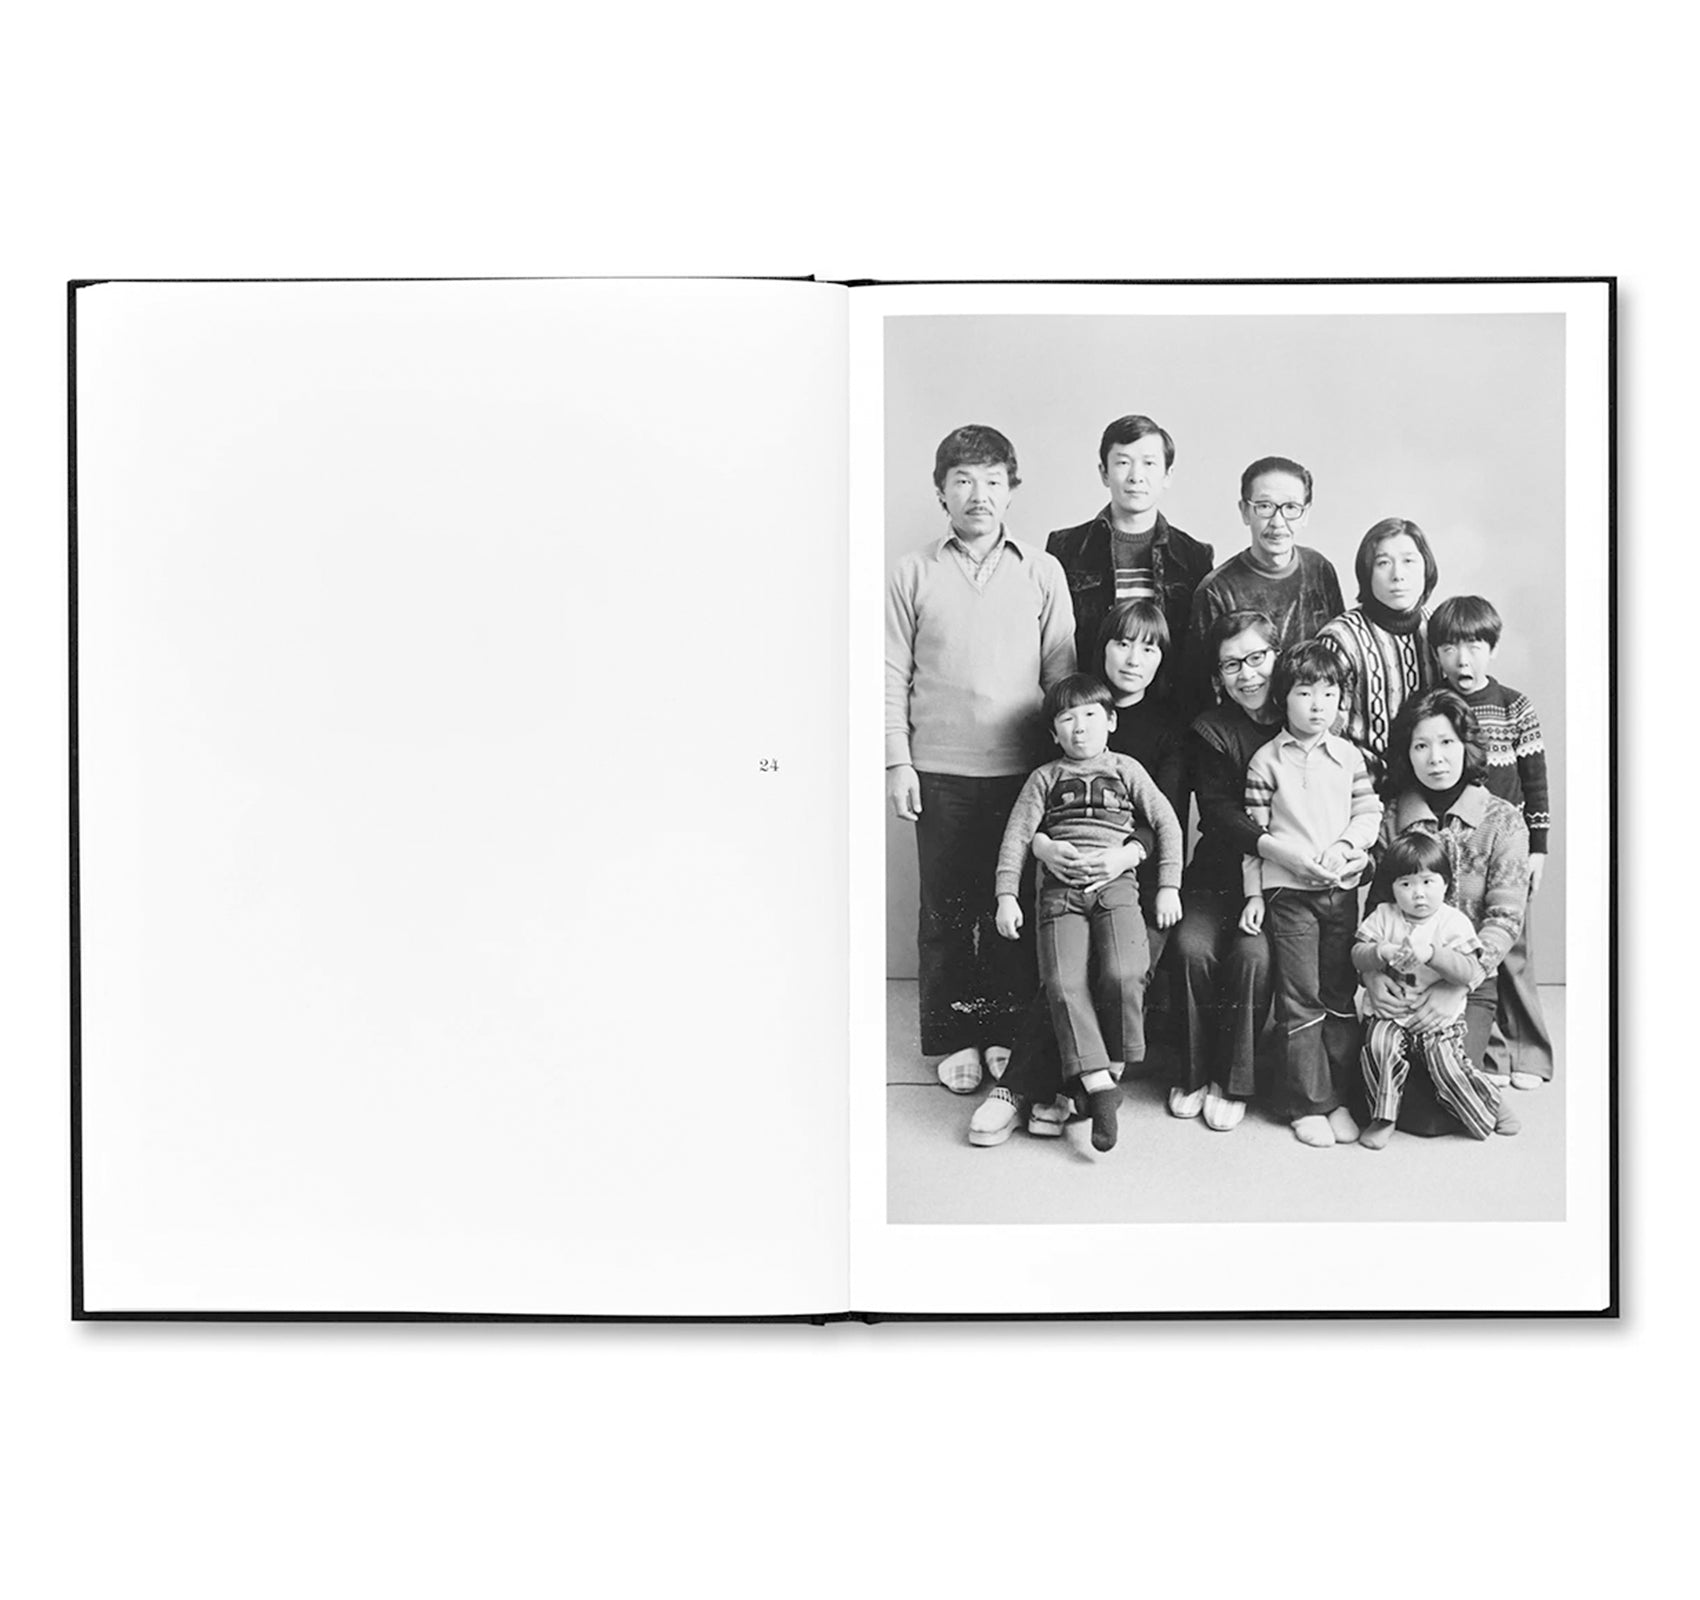 FAMILY by Masahisa Fukase [SPECIAL EDITION]